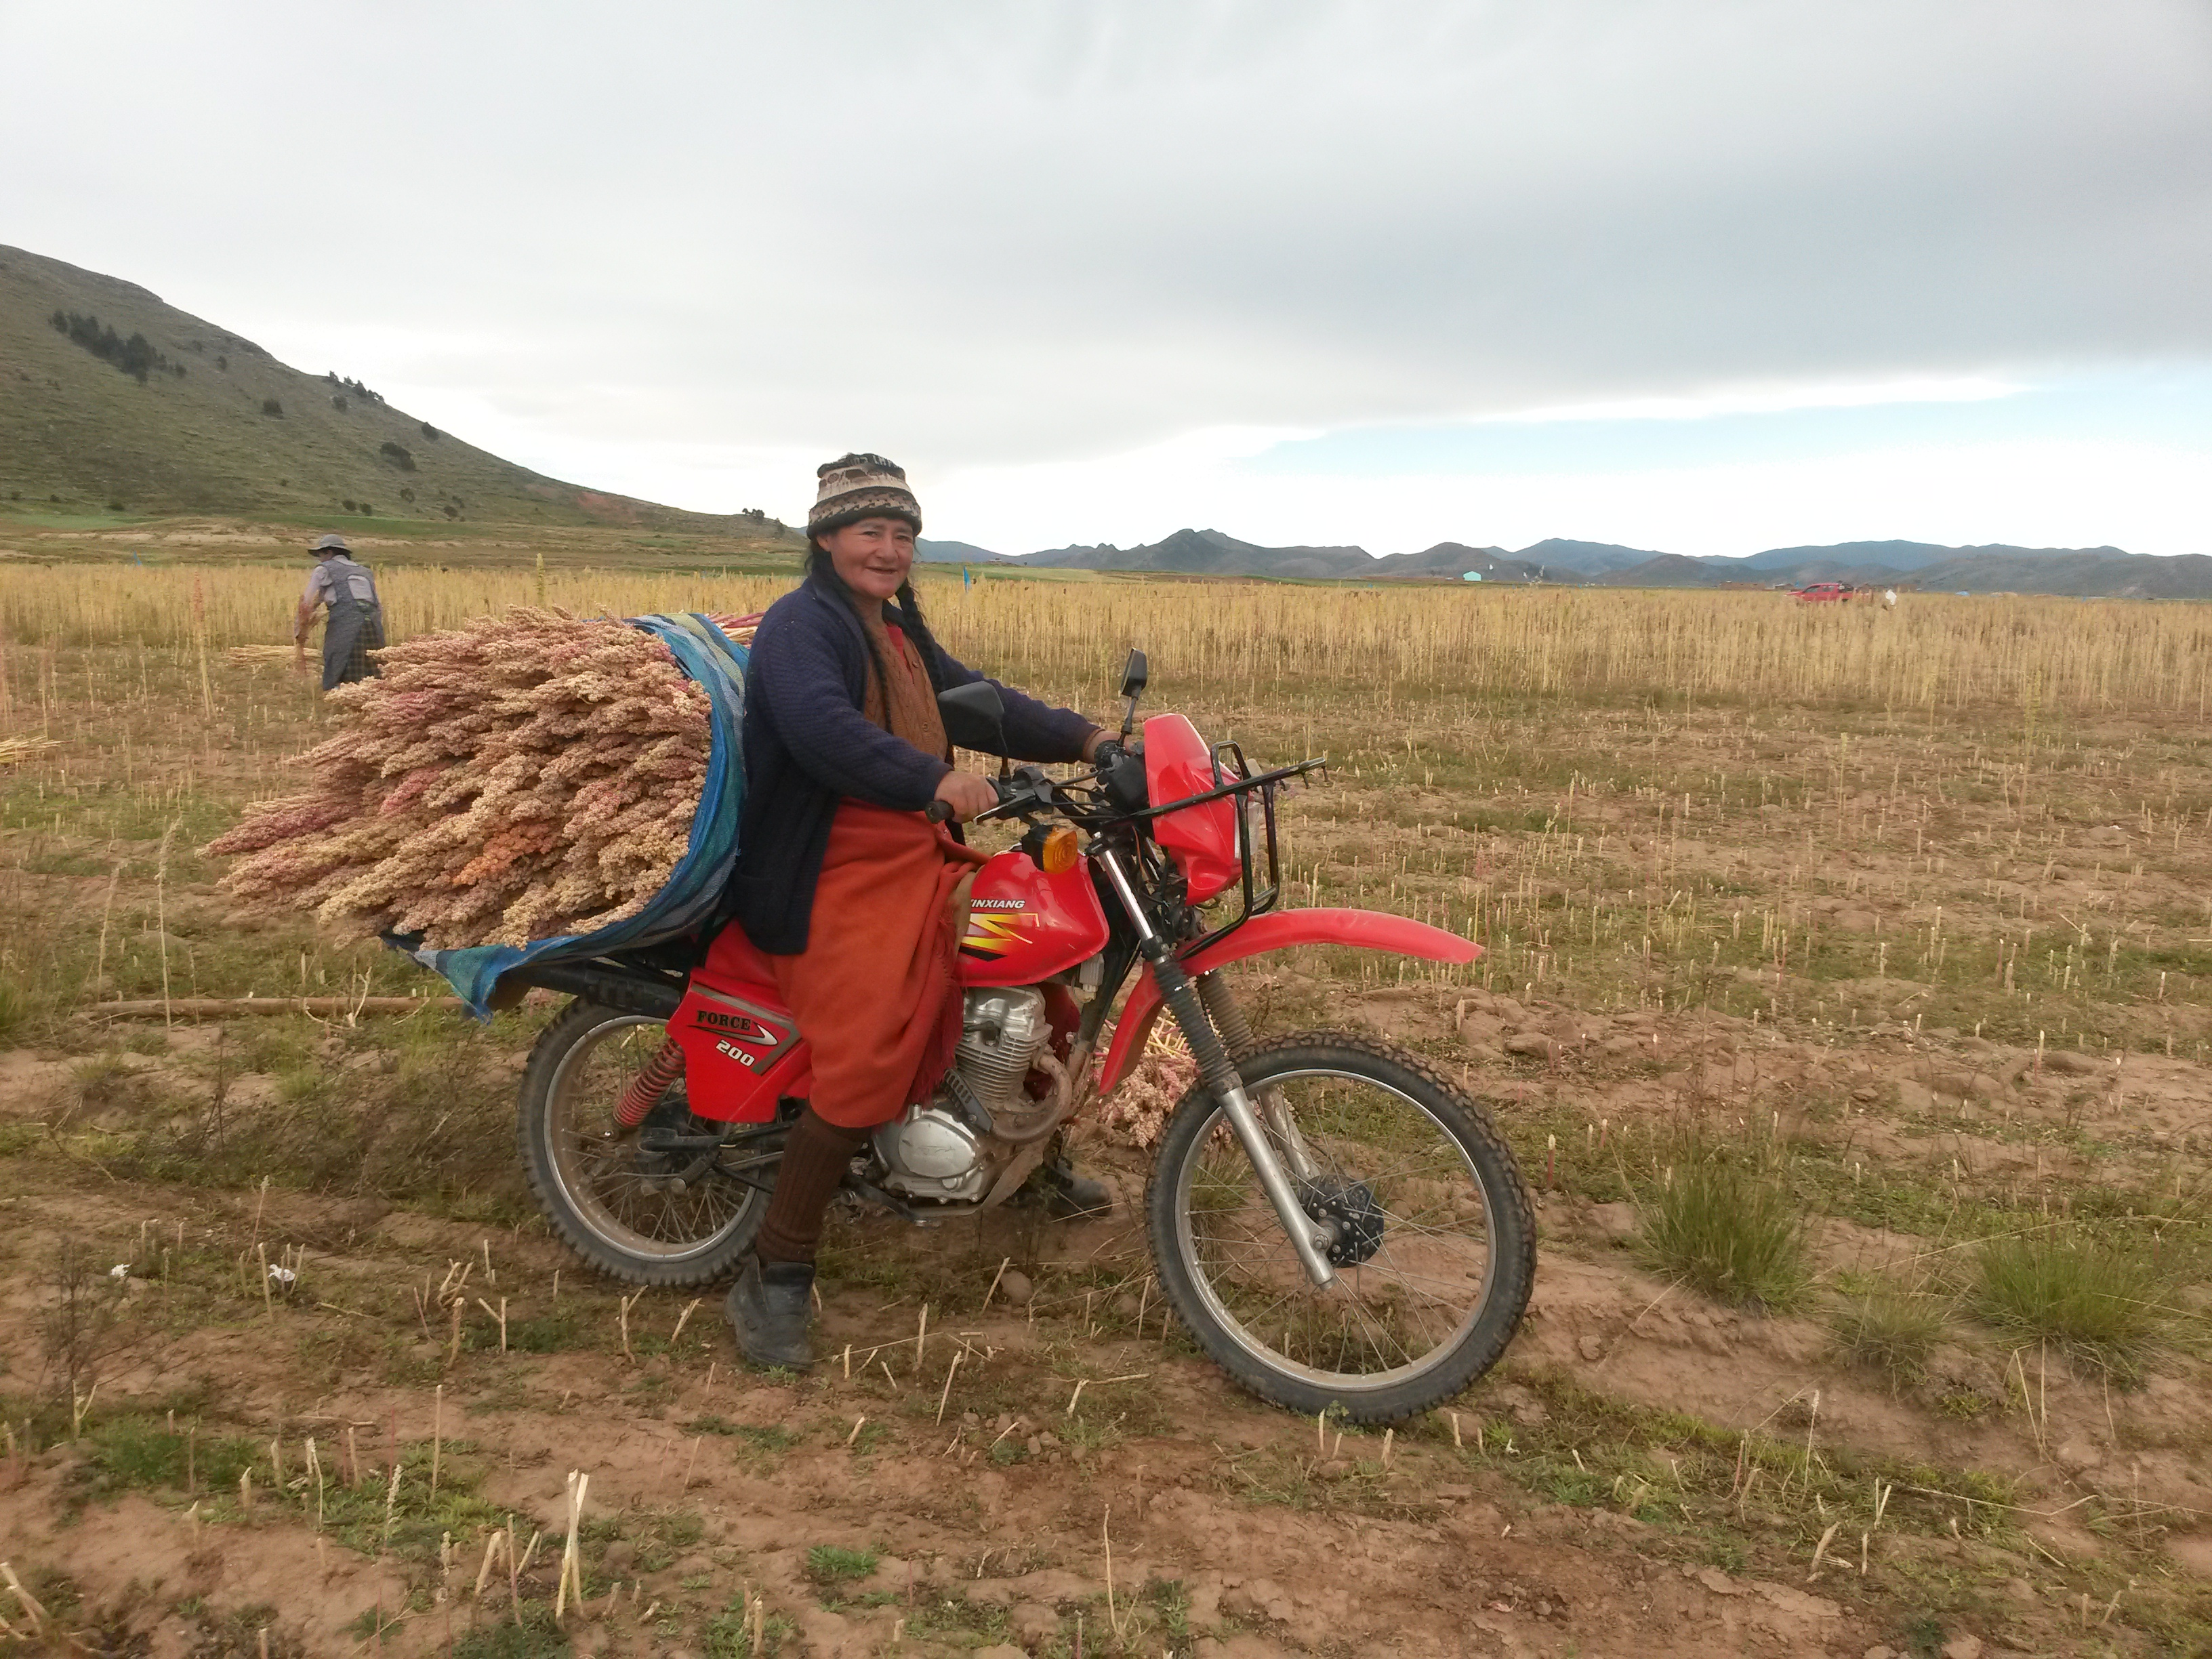 A quinoa producer transporting her crops by motorbike